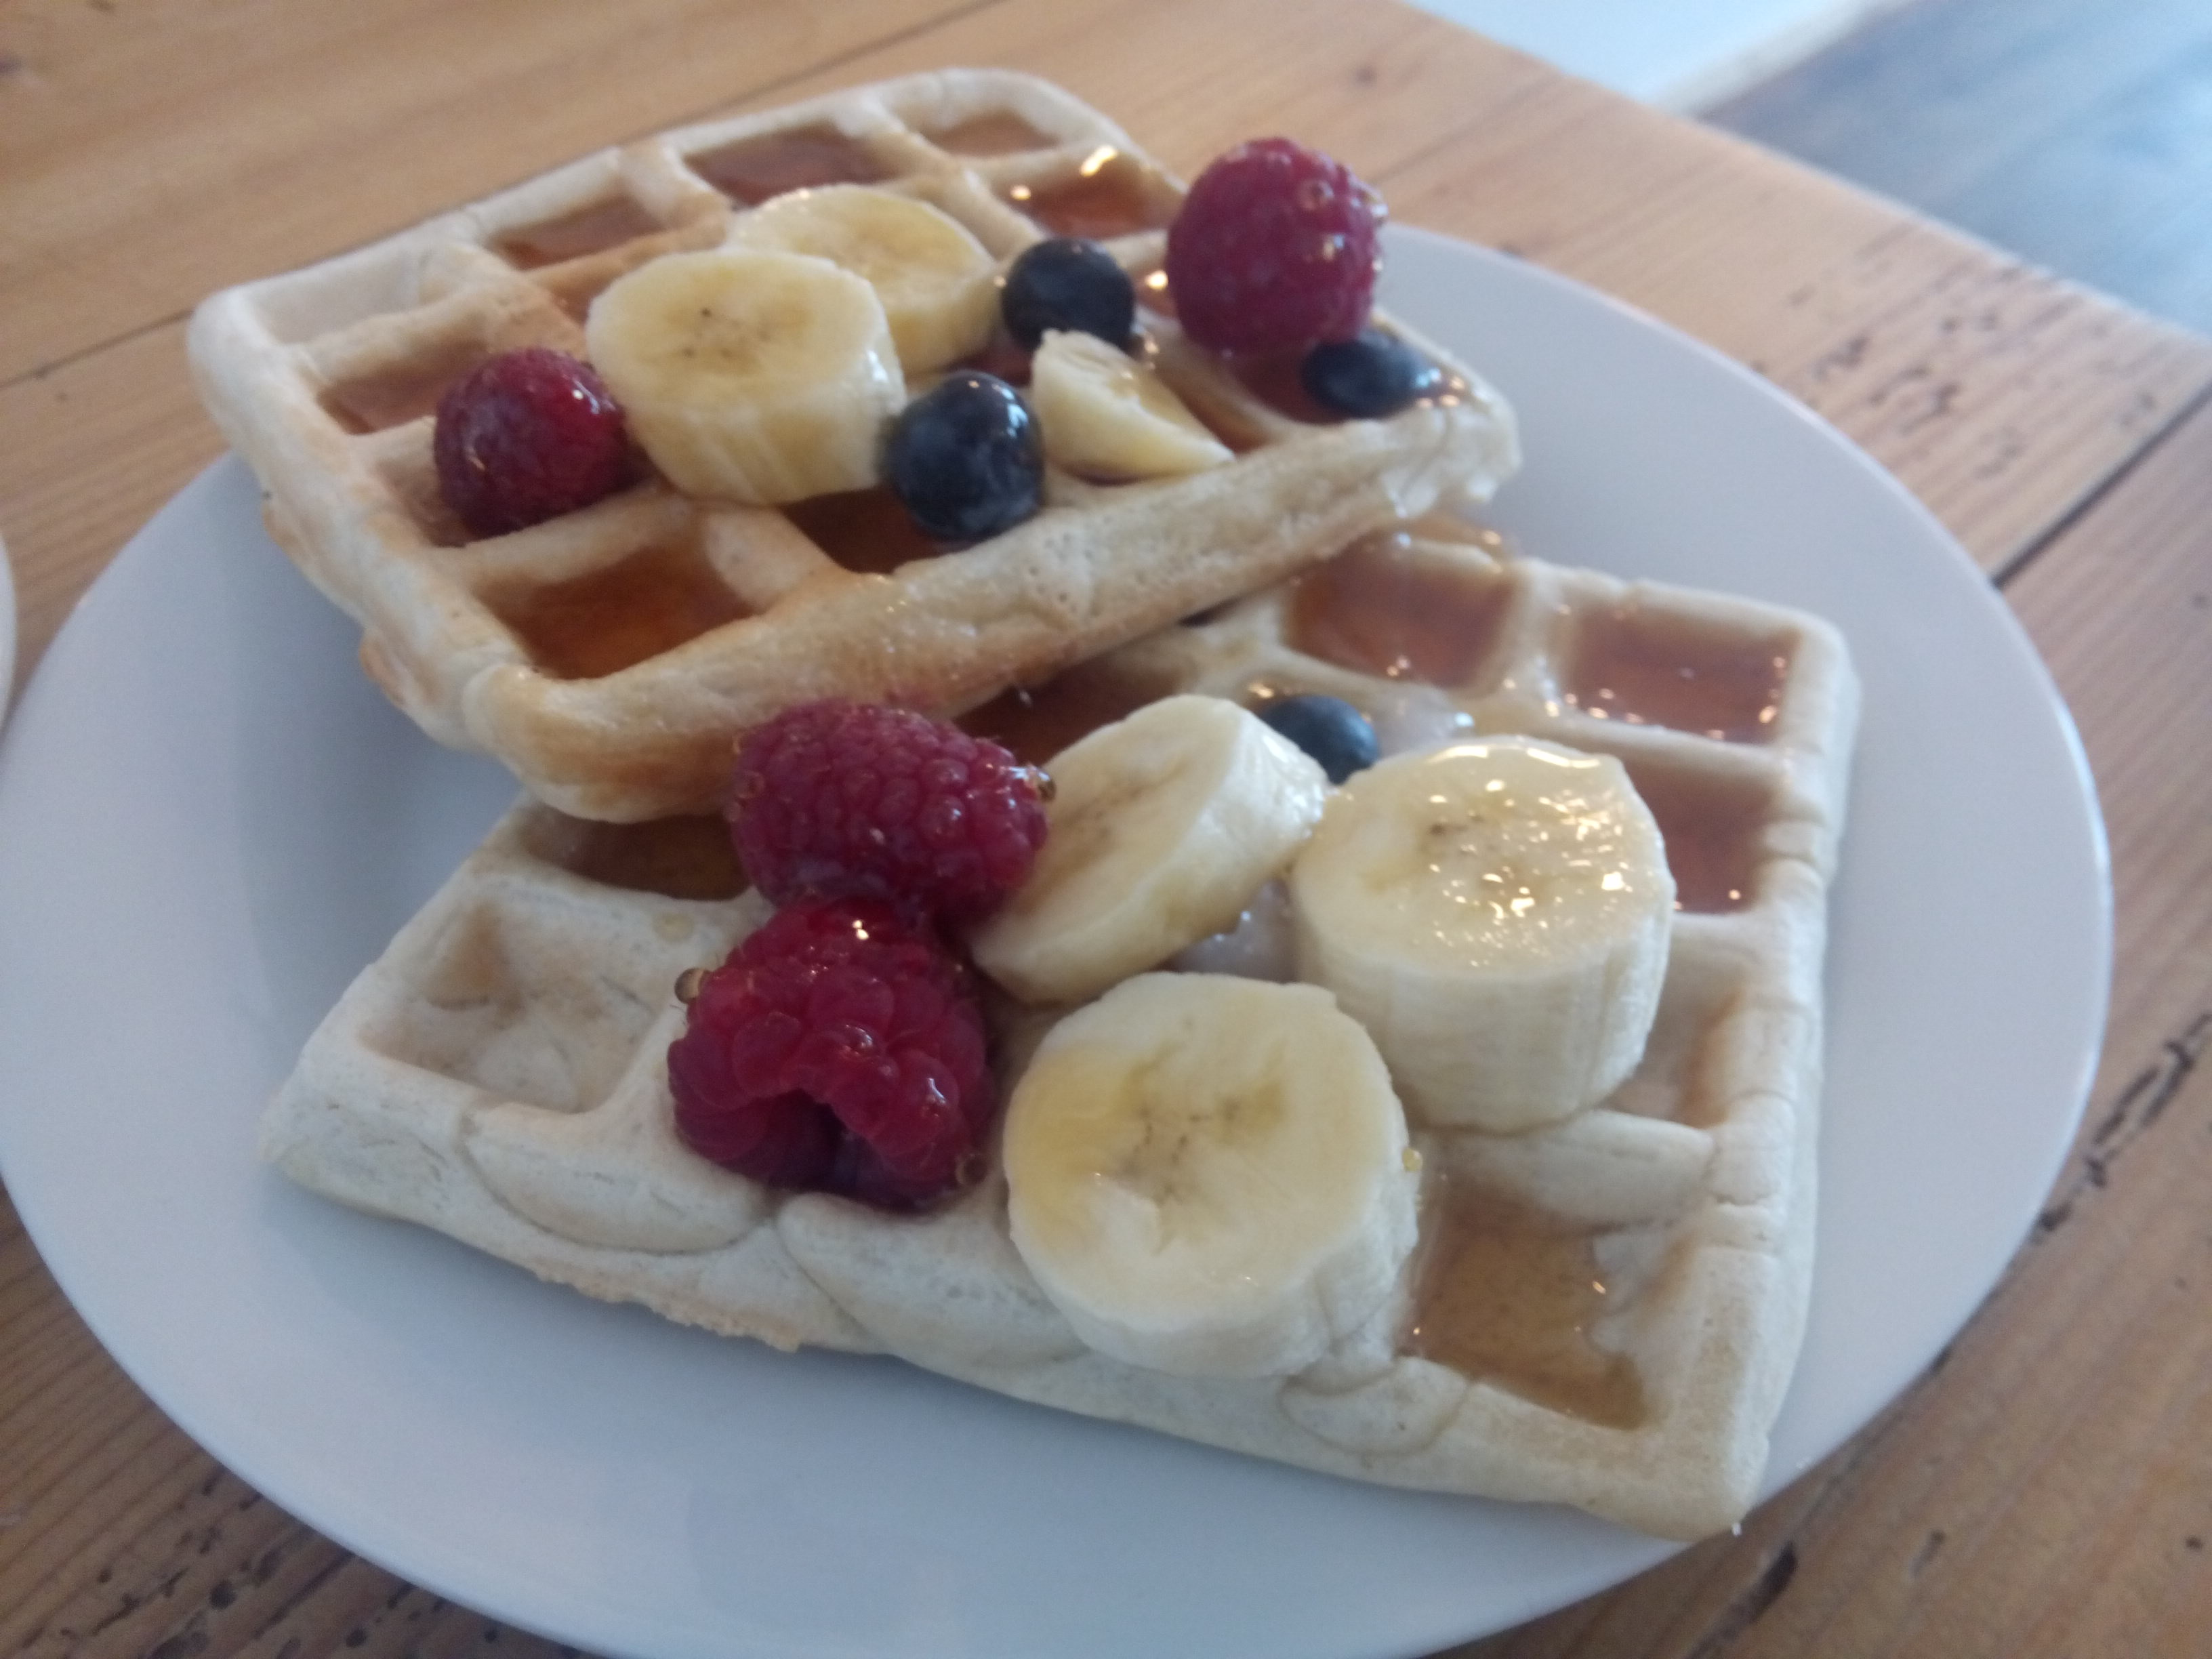 Two waffles on a plate with syrup, banana, blueberries and raspberries